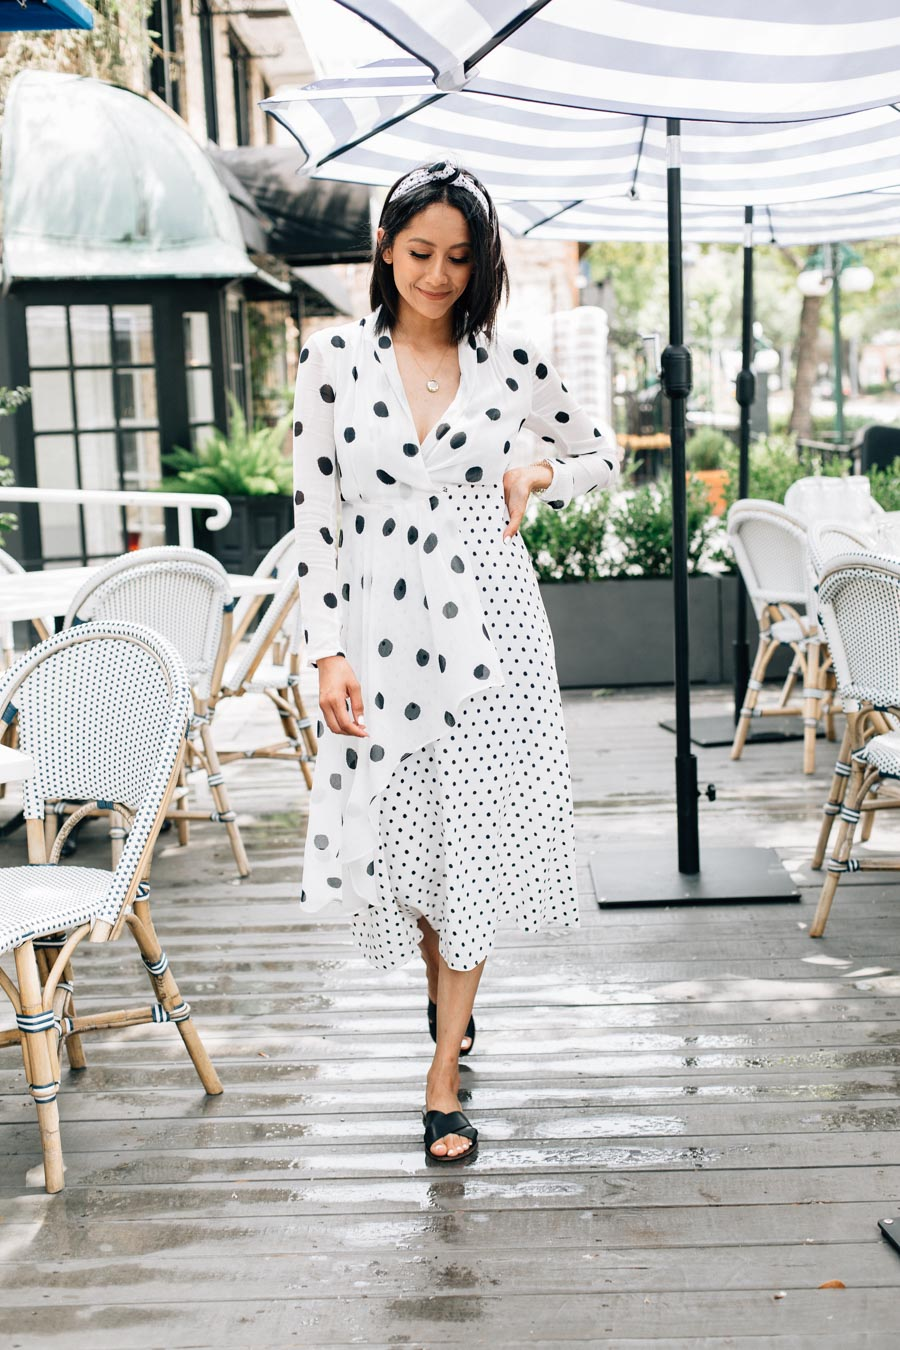 Lilly Beltran wearing a white and black polka dot dress from Farm Rio, with black sandals and a turban headband for a casual summer brunch look.